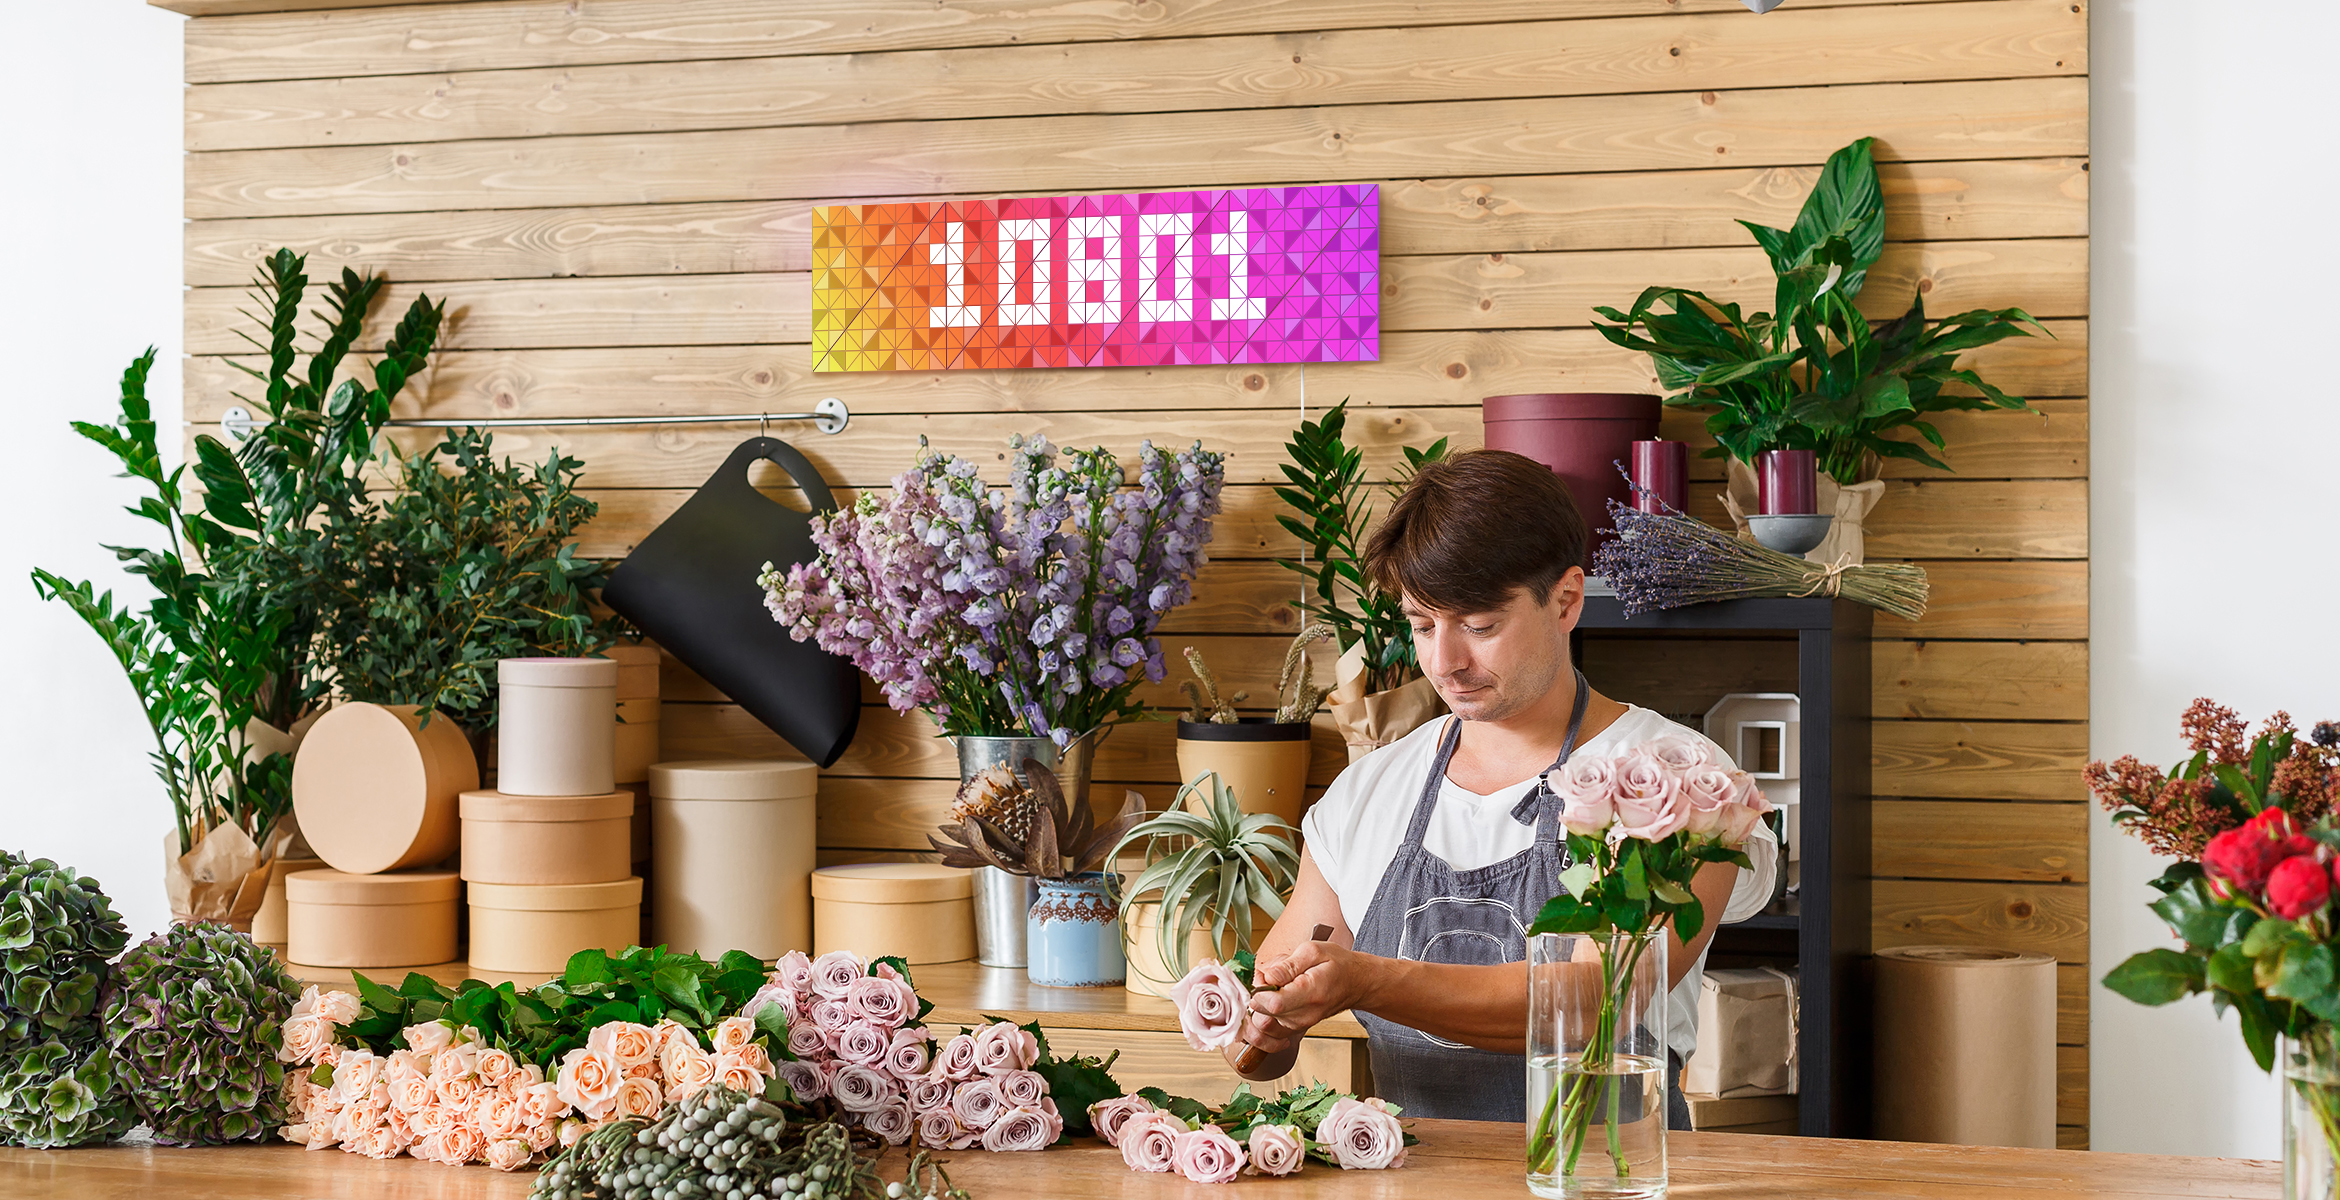 Infoscreen, assembled from 16 smart light surfaces, complements flower shop's interior and displays Instagram follower count